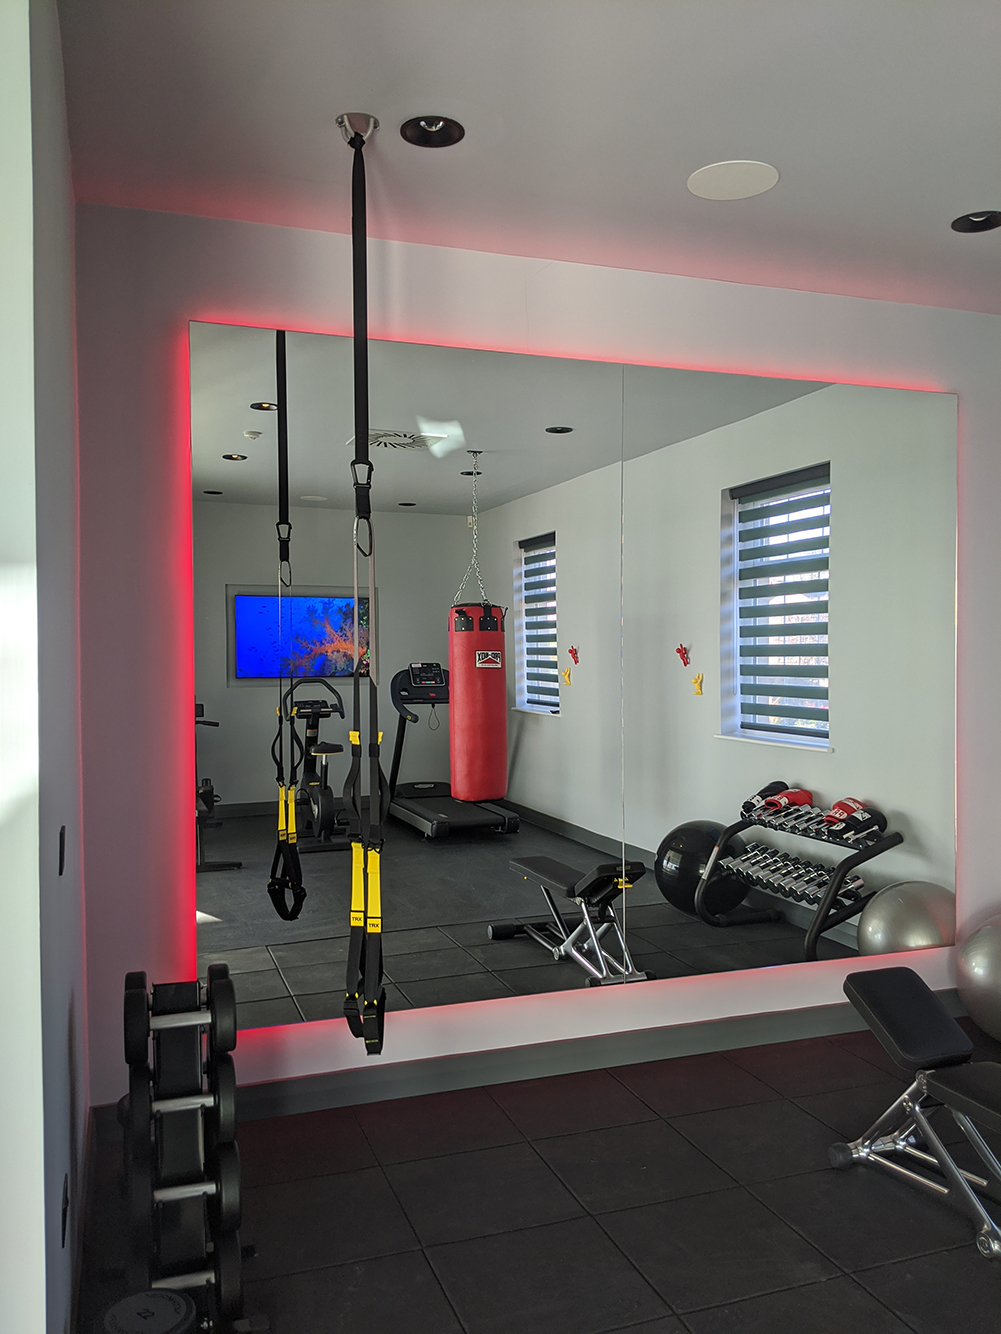 A photo of the finished gym with red LED lighting around the mirror.